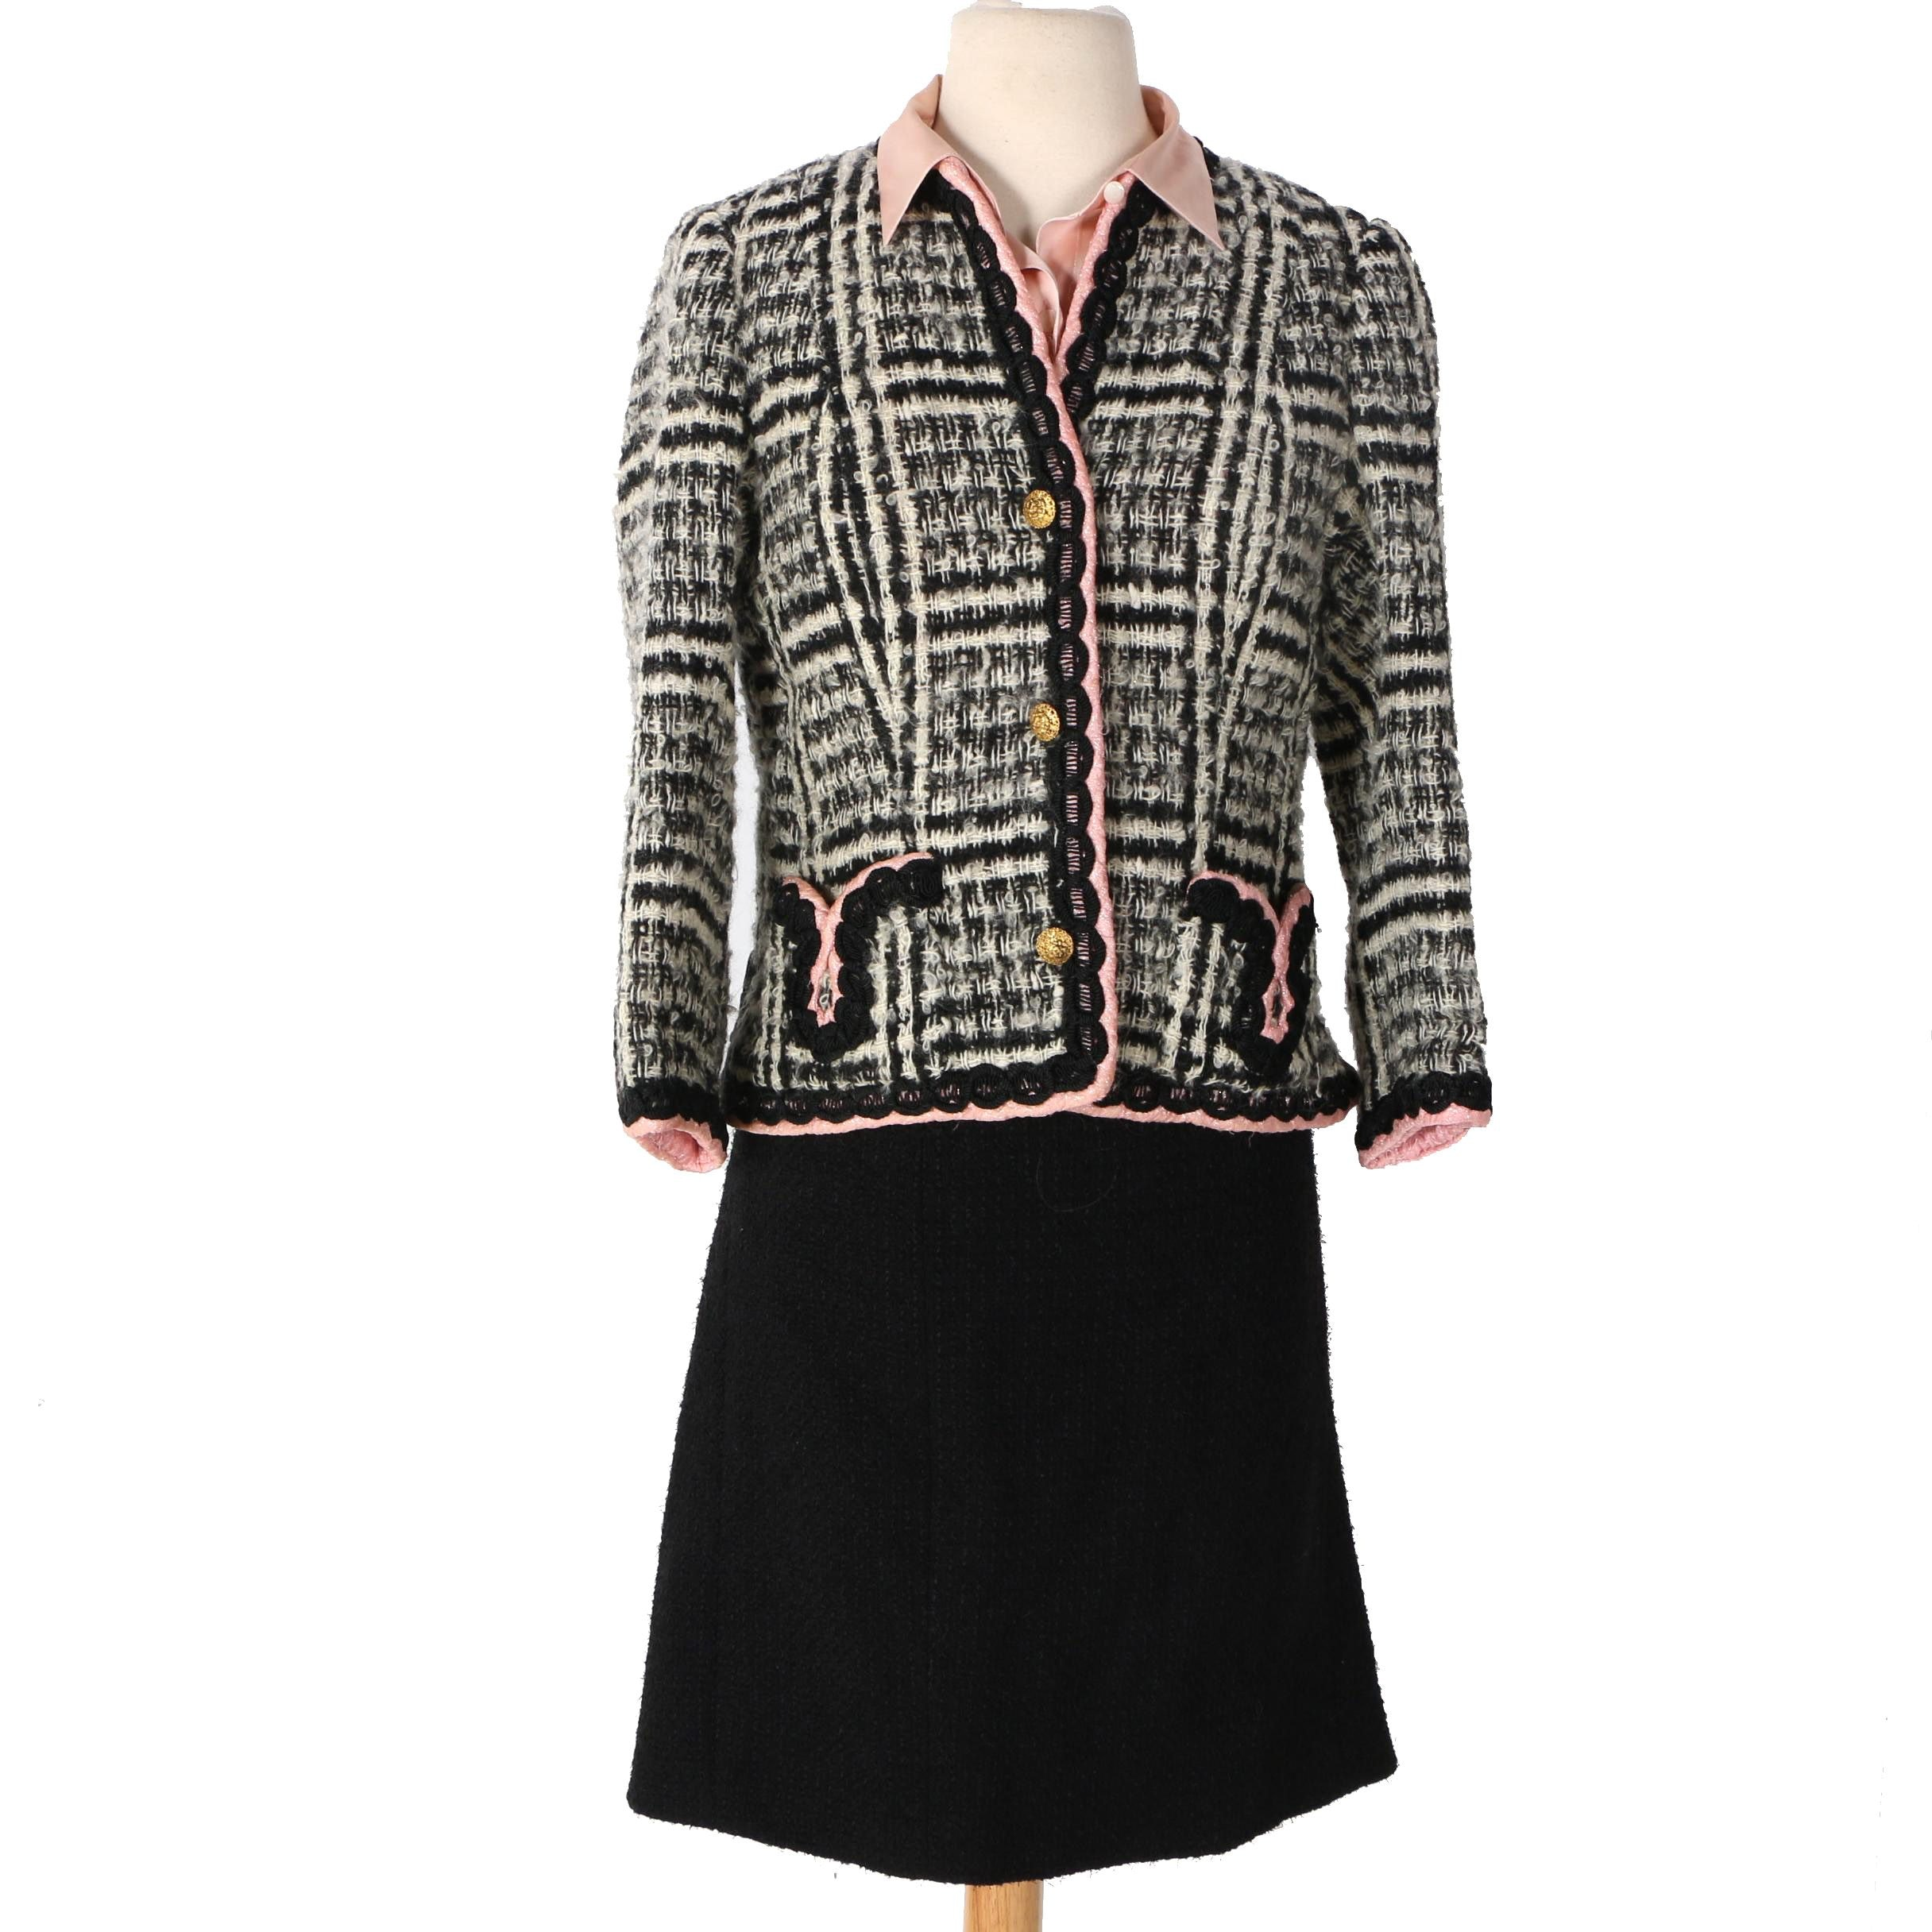 Women's Chanel Separates and Knit Jacket